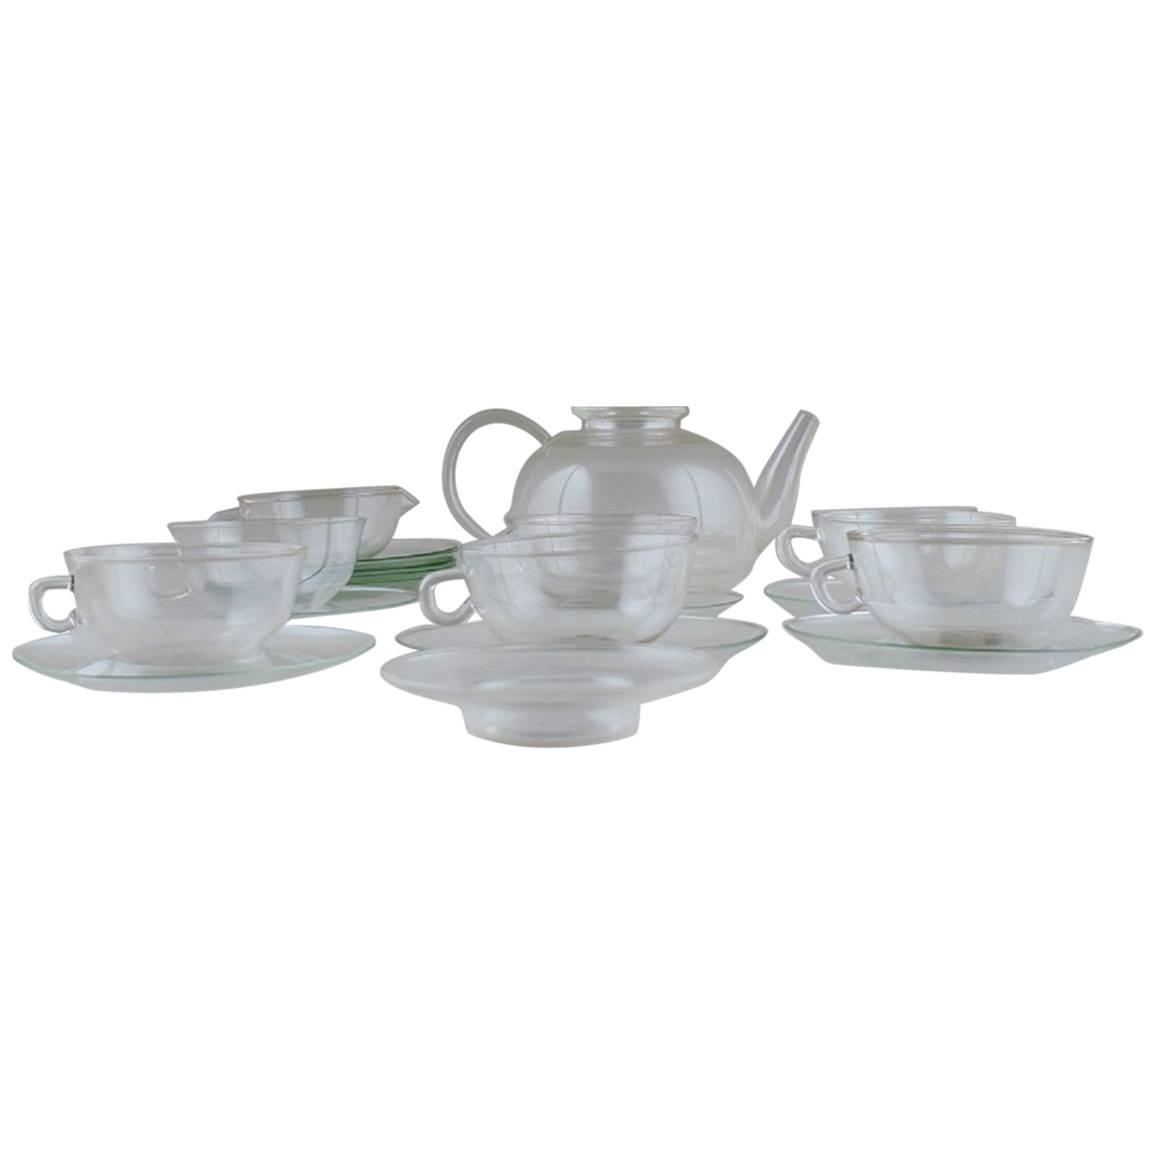 wilhelm wagenfeld jena tea set of clear glass for sale at 1stdibs. Black Bedroom Furniture Sets. Home Design Ideas